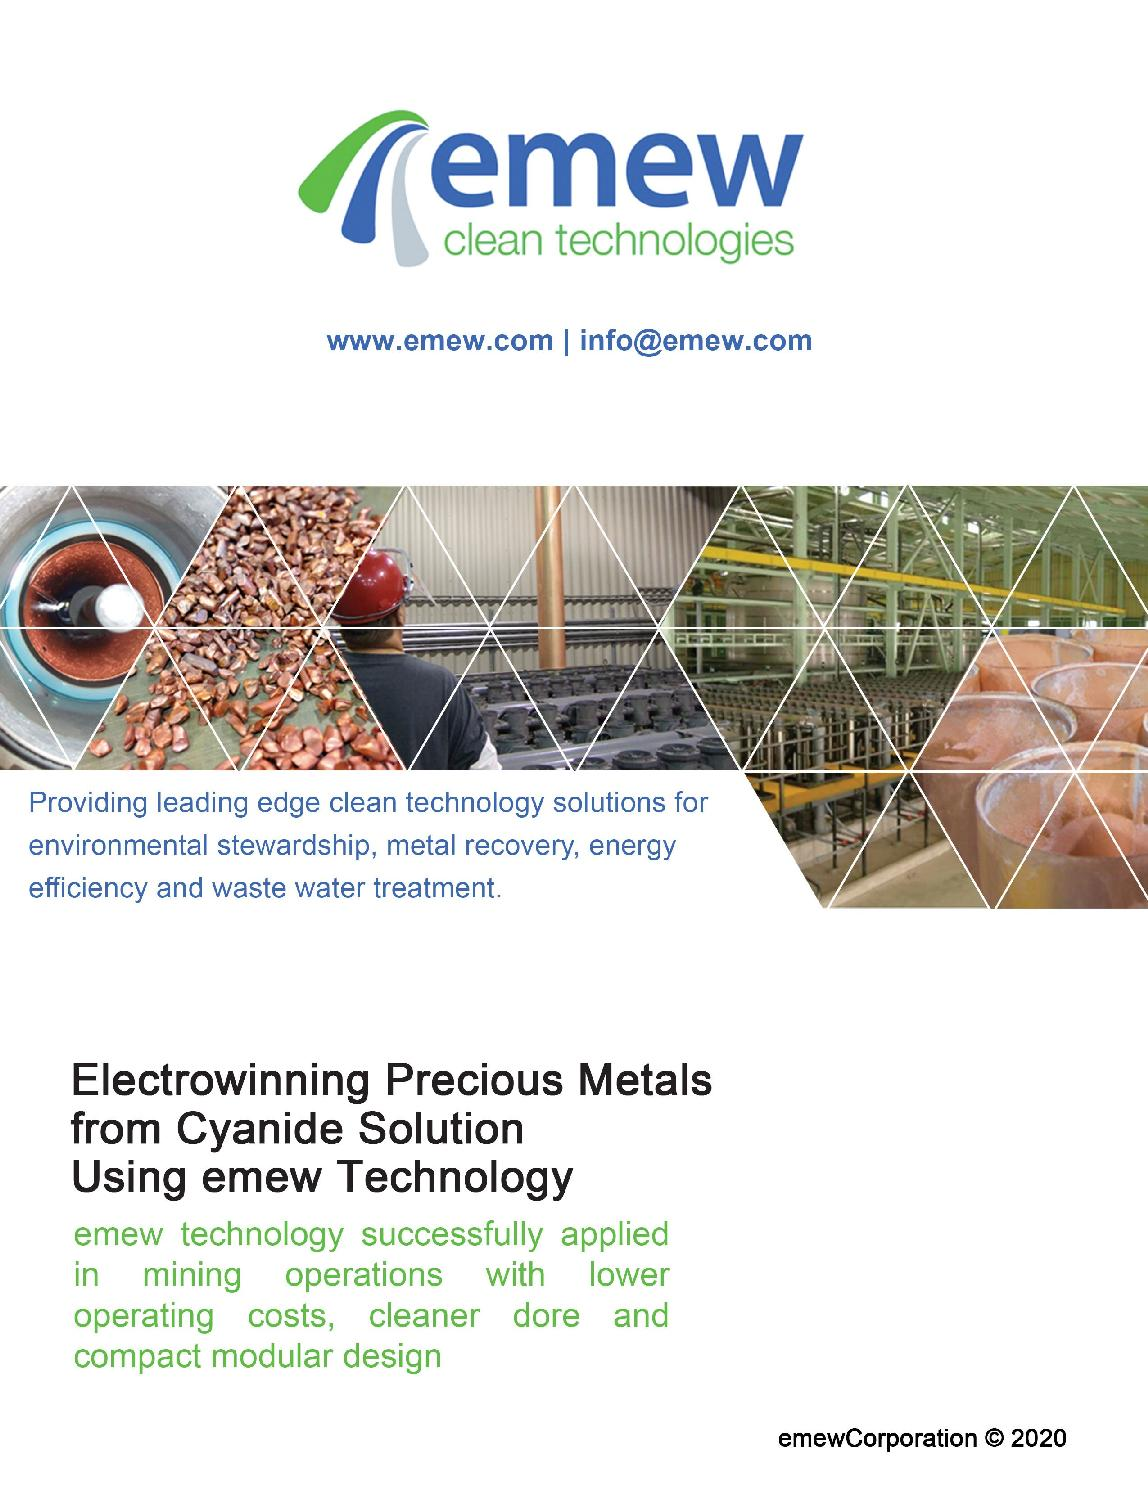 Electrowinning Precious Metals from Cyanide Solution using emew Technology